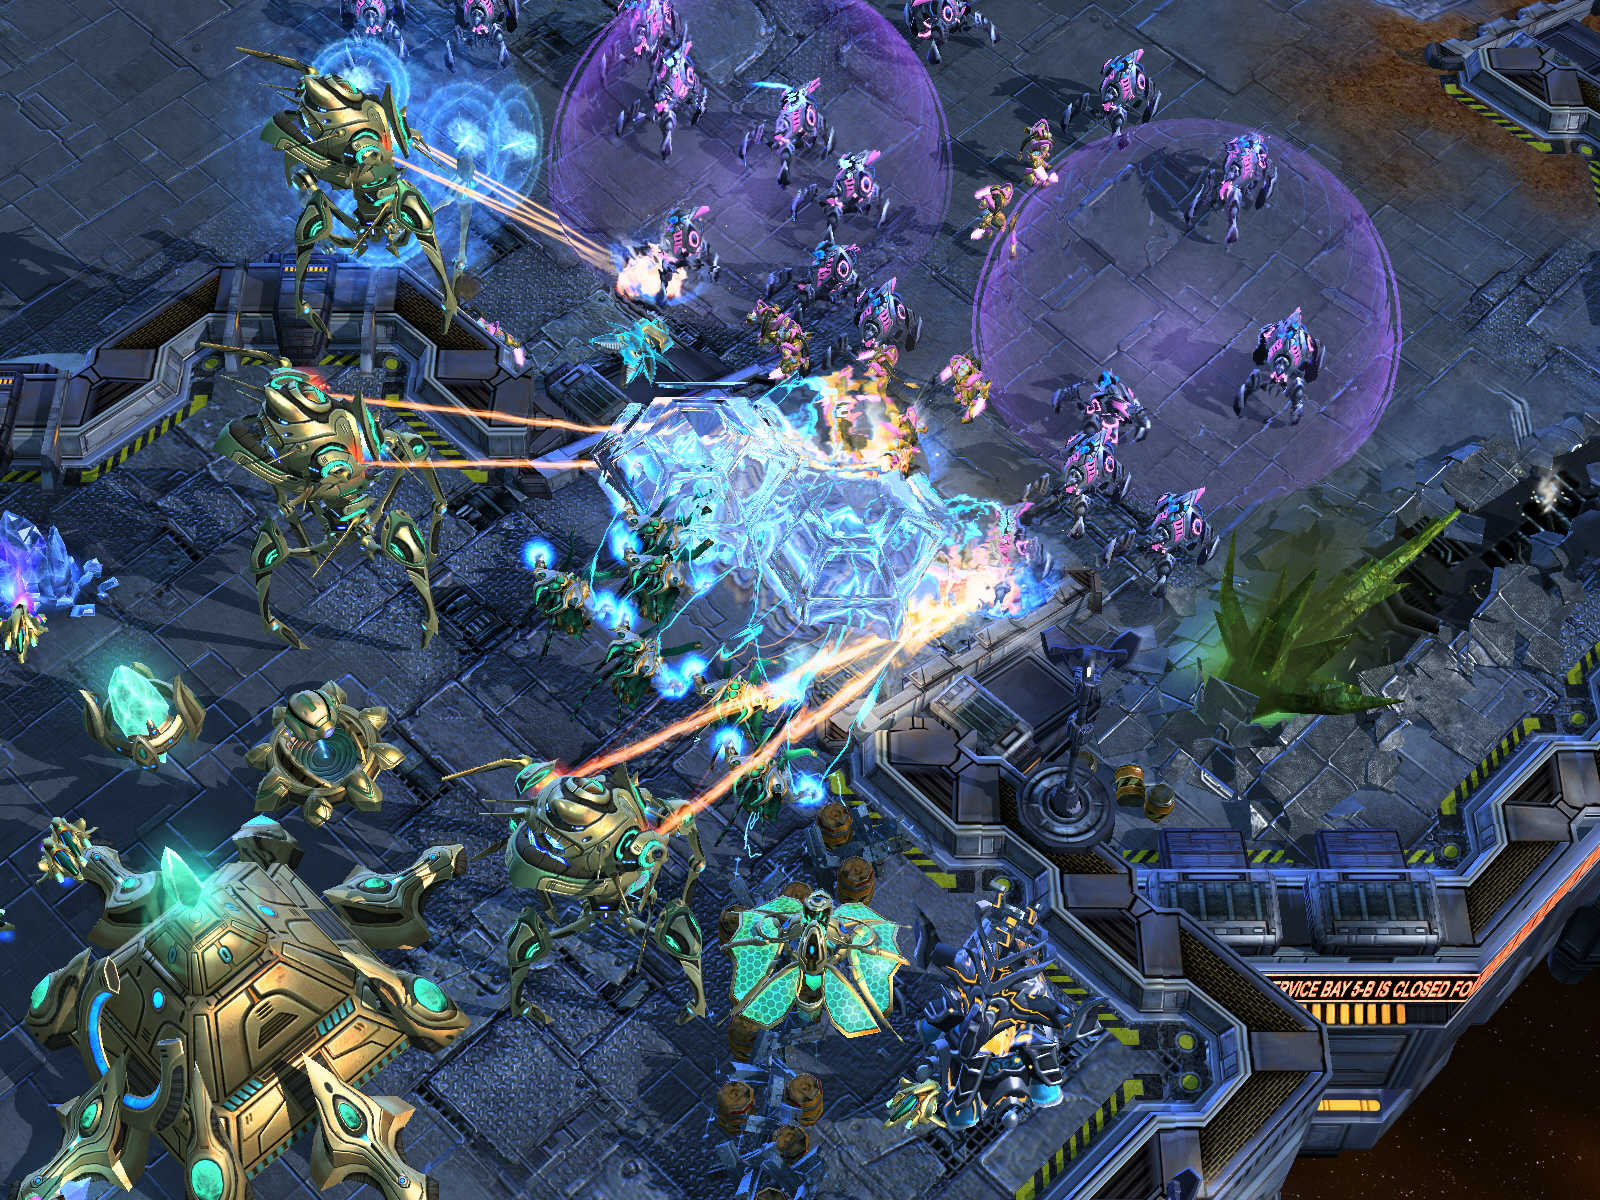 Blizzard confirma que Starcraft 2 estará integrado con Facebook [OK…]